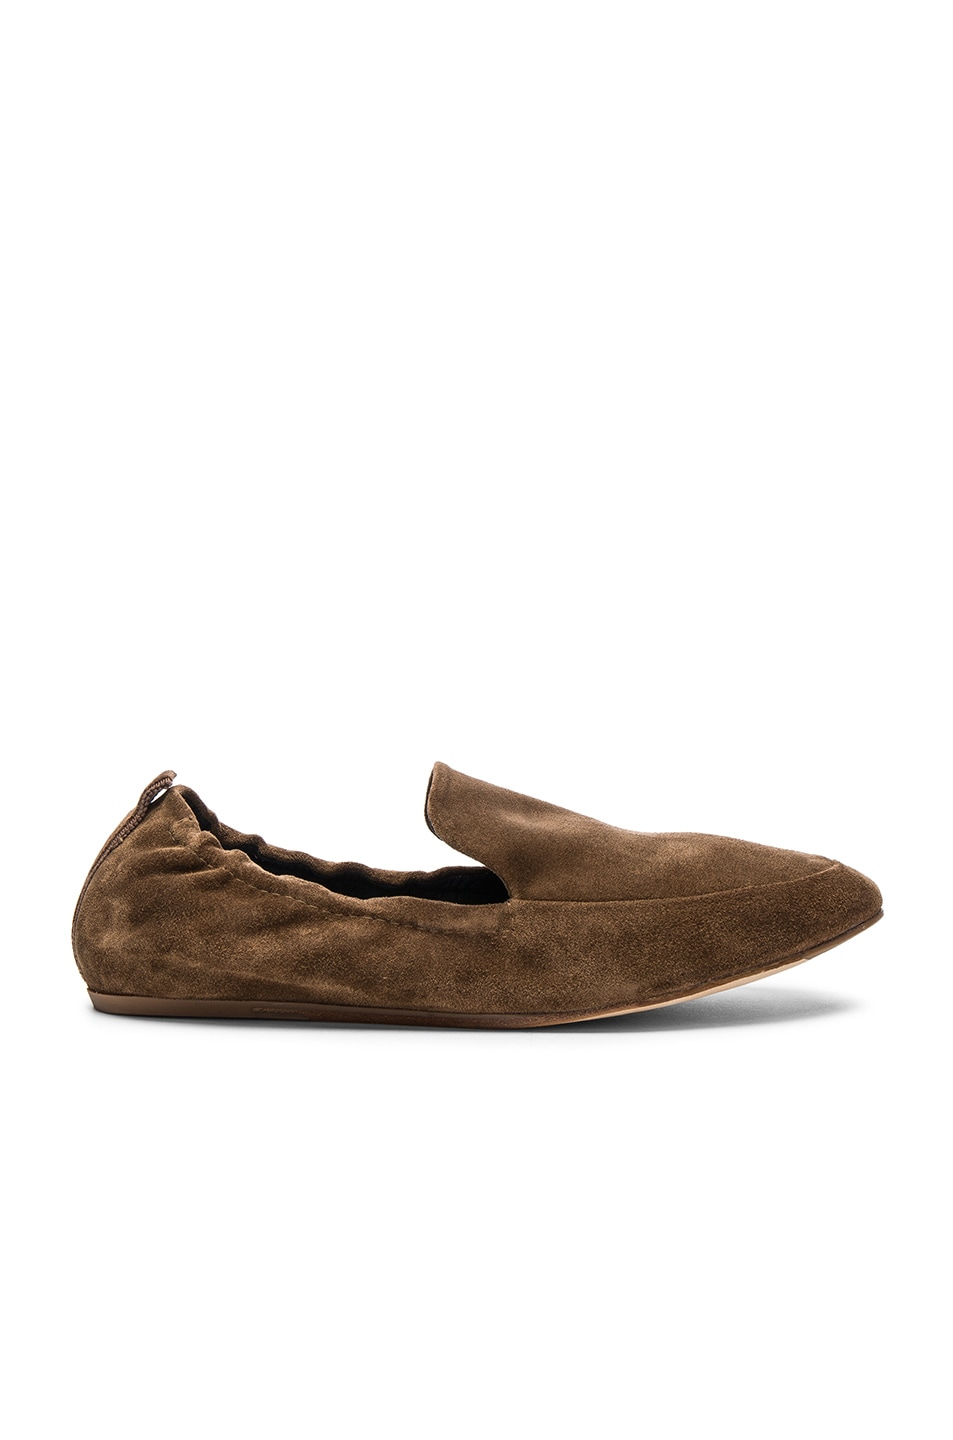 Lanvin Suede Loafers Discount Pay With Paypal Low Price Fee Shipping Sale Online Order Online Outlet Fast Delivery tfzYp8XyId